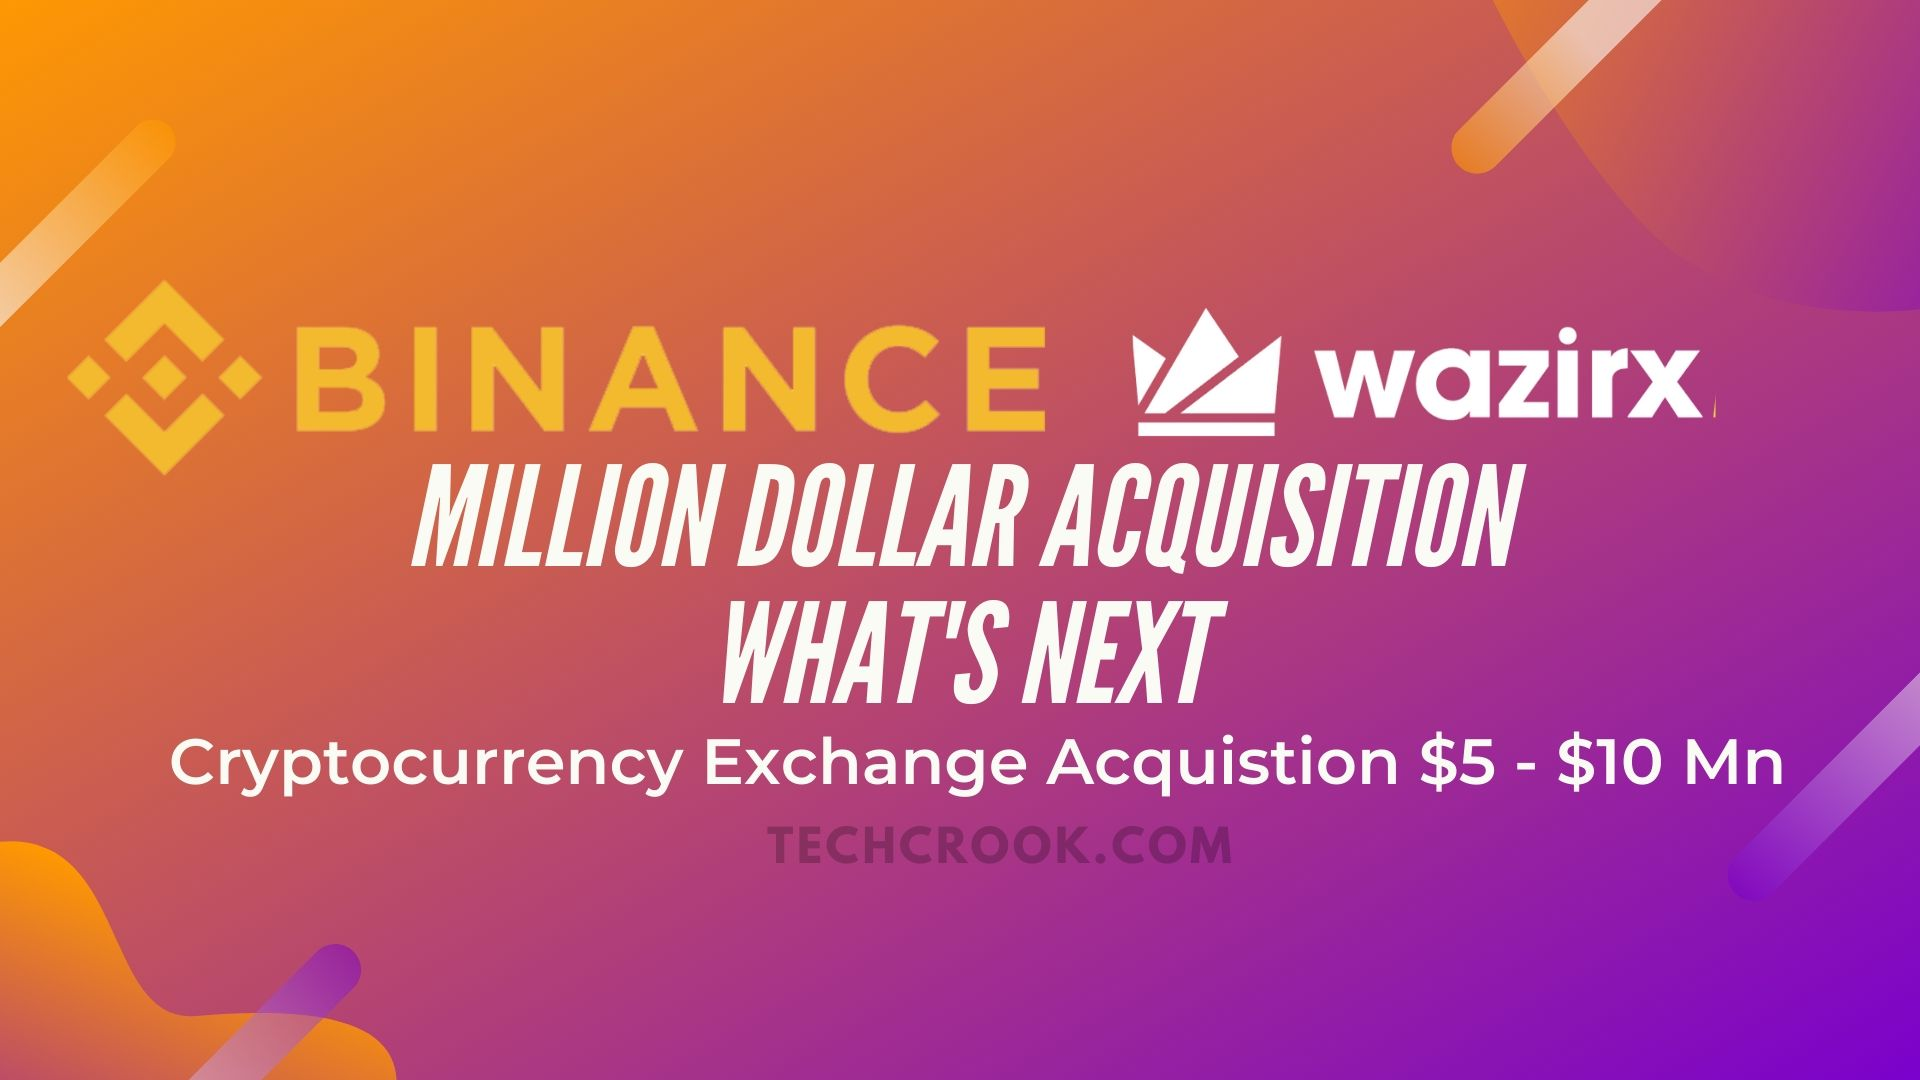 WazirX India now officially acquired by Binance